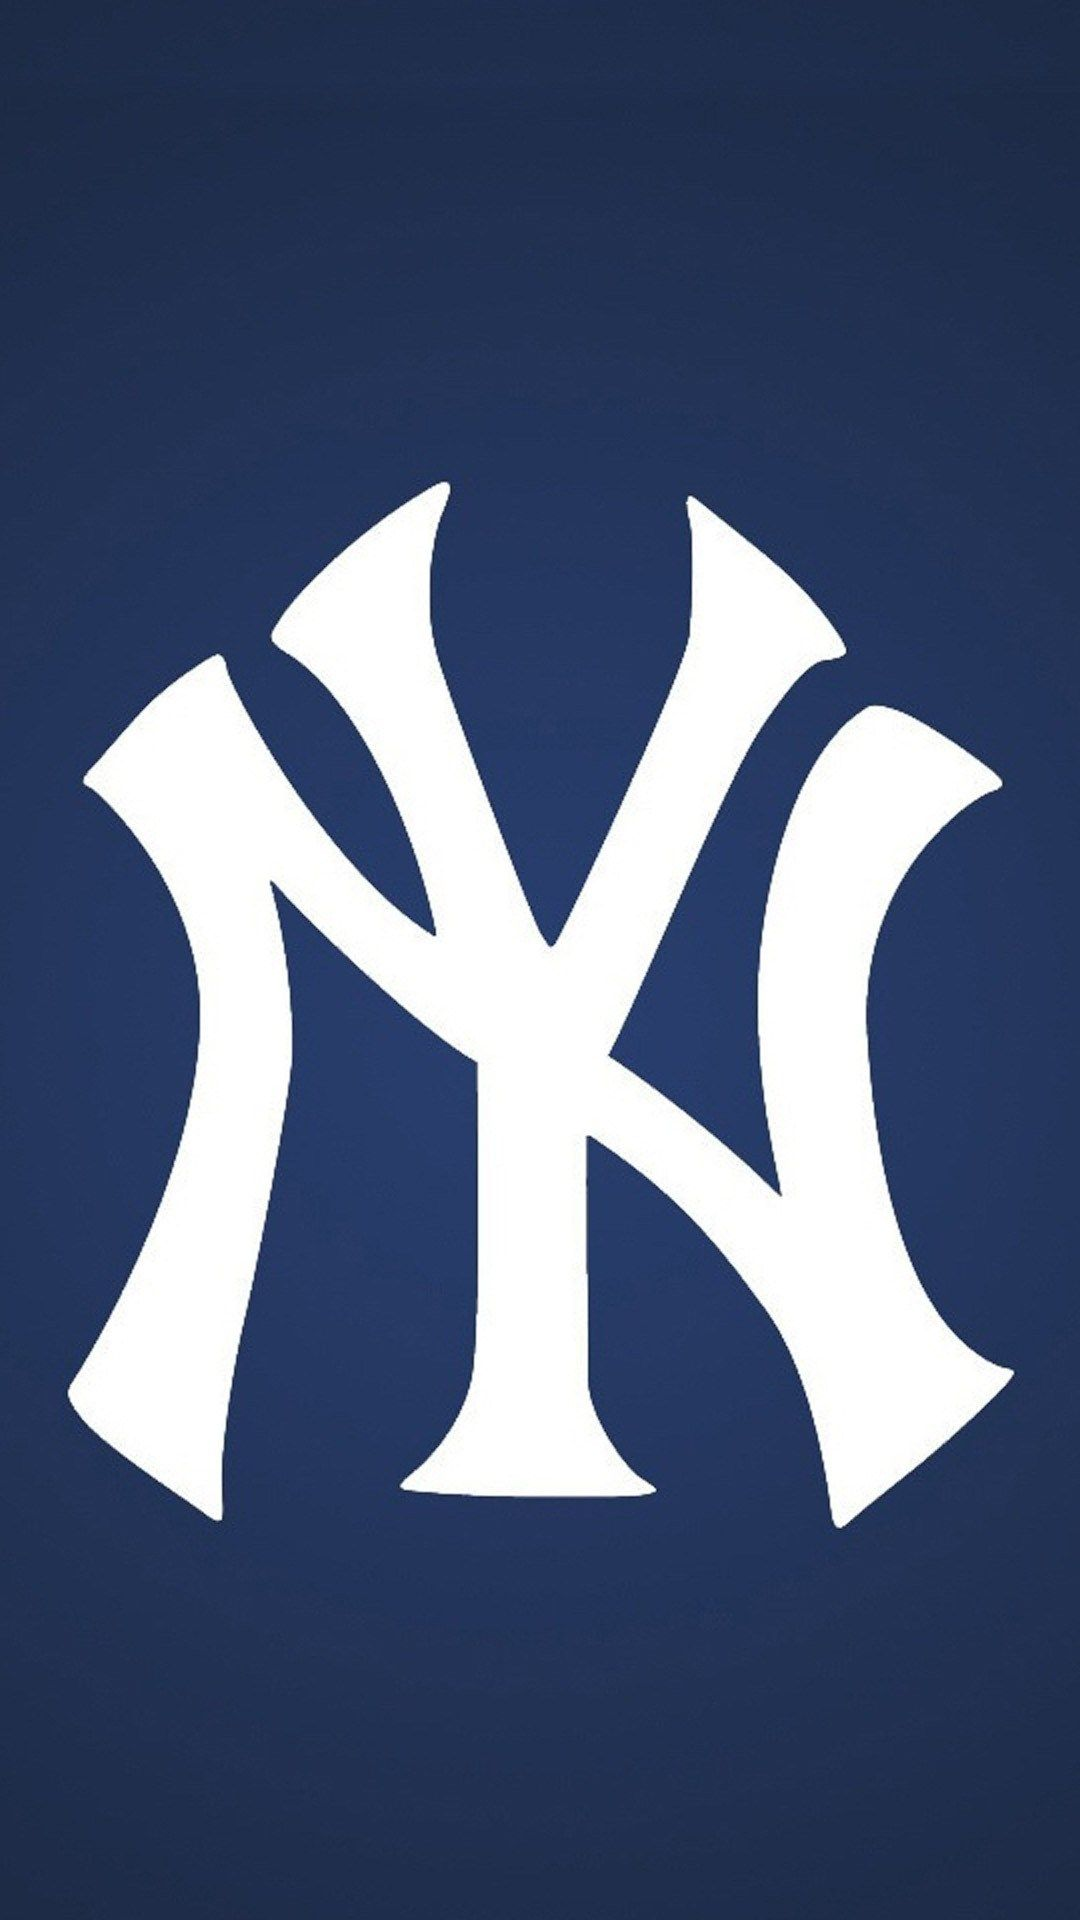 New York Yankees Wallpaper Iphone Beautiful New York Yankees Wallpaper Iphone Ny Yankees Logo Wal New York Yankees Ny Yankees Logo New York Yankees Baseball